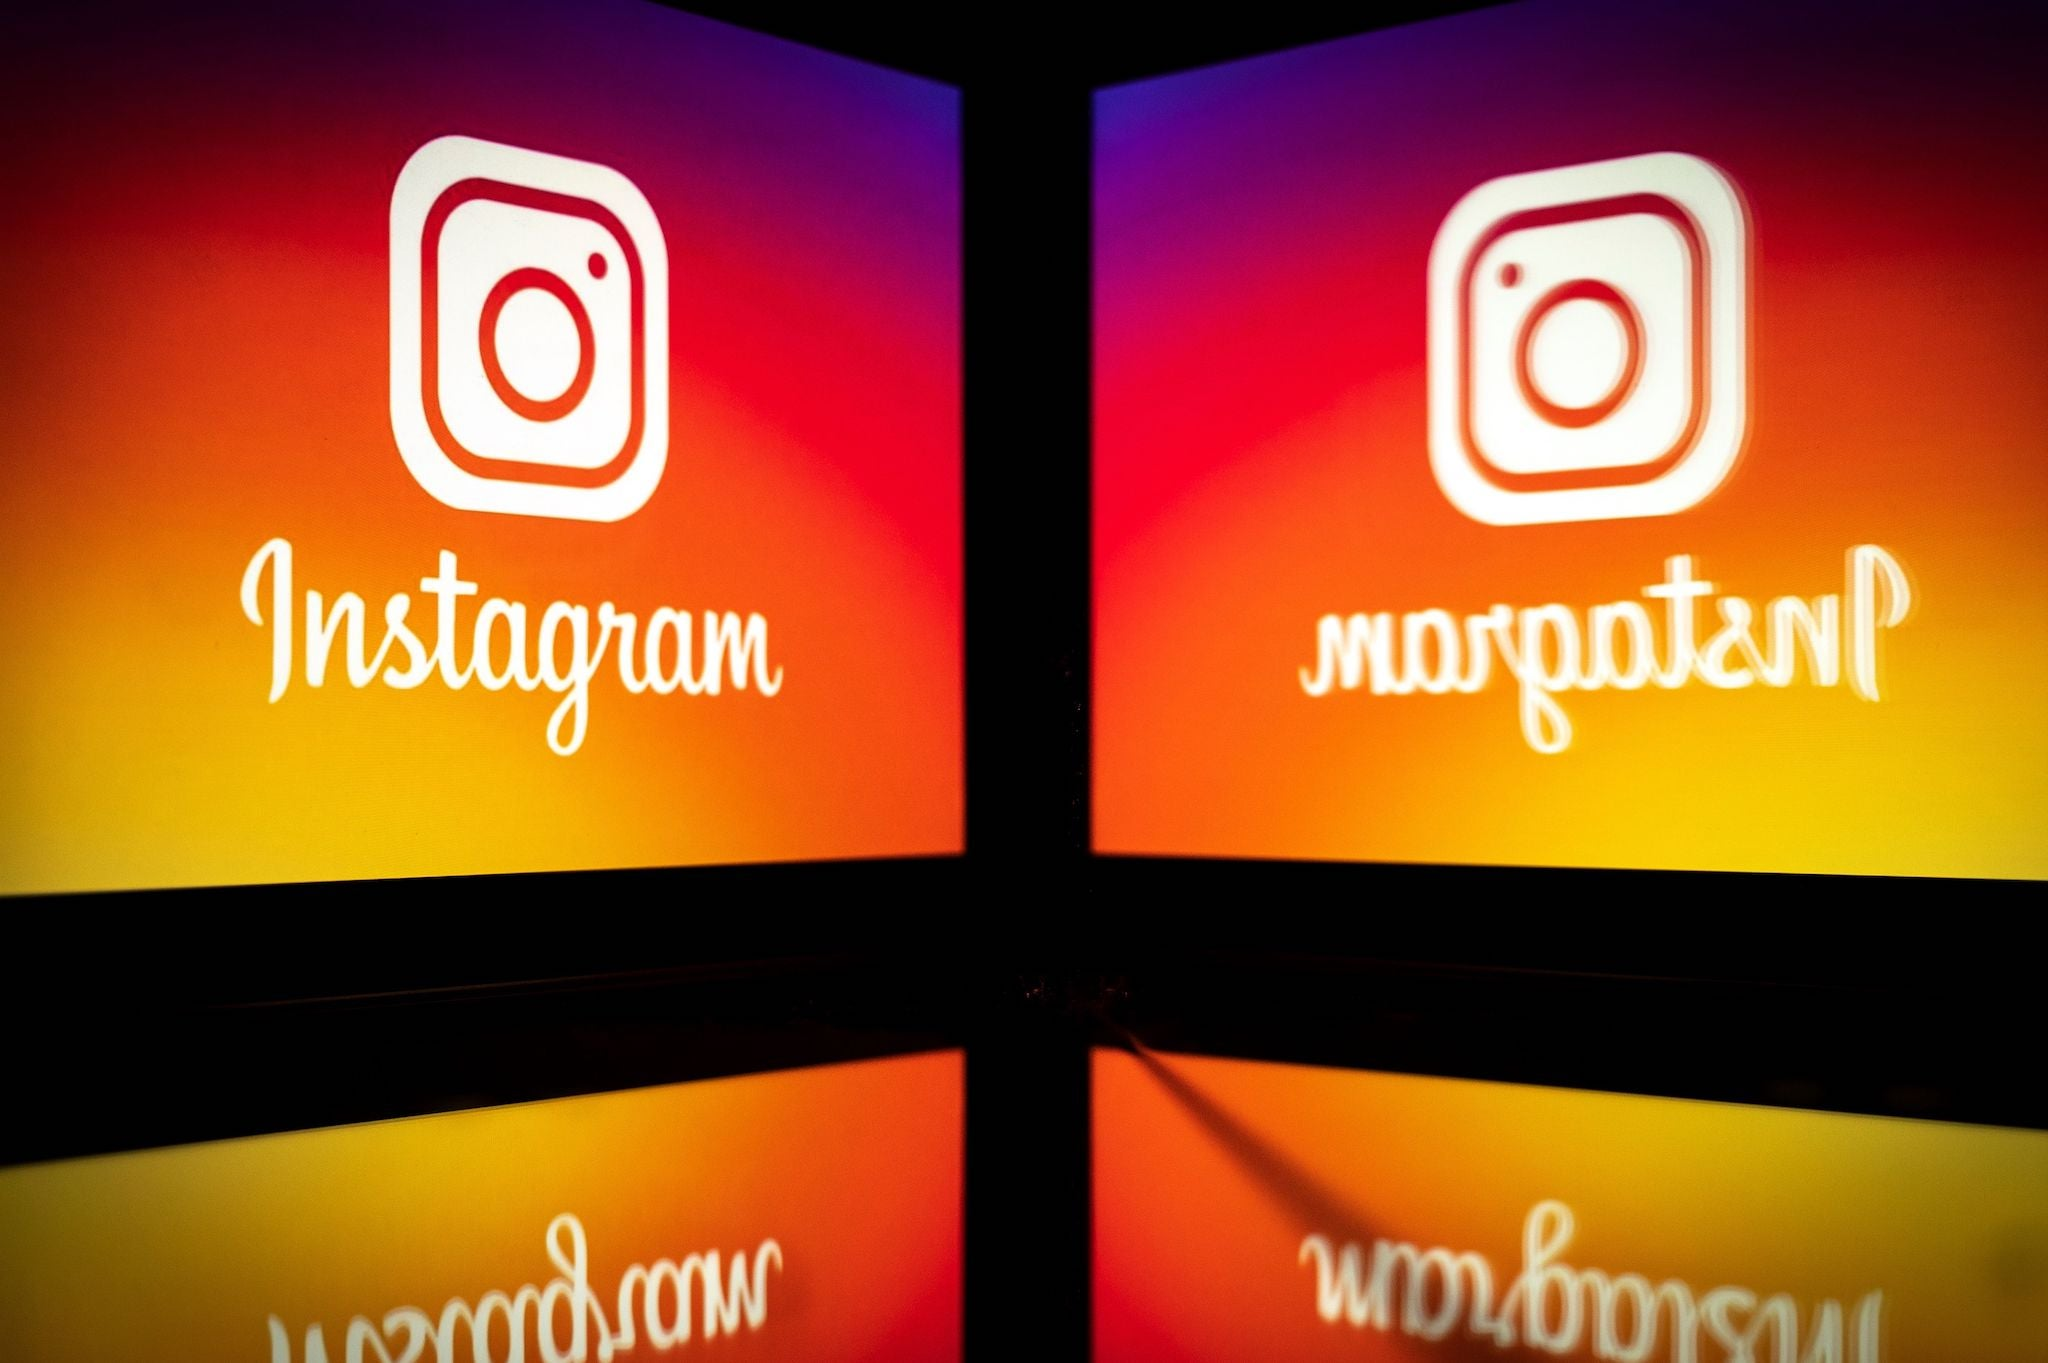 Instagram Down App S Search And Other Functions Not Working Properly Amid Partial Outage The Independent